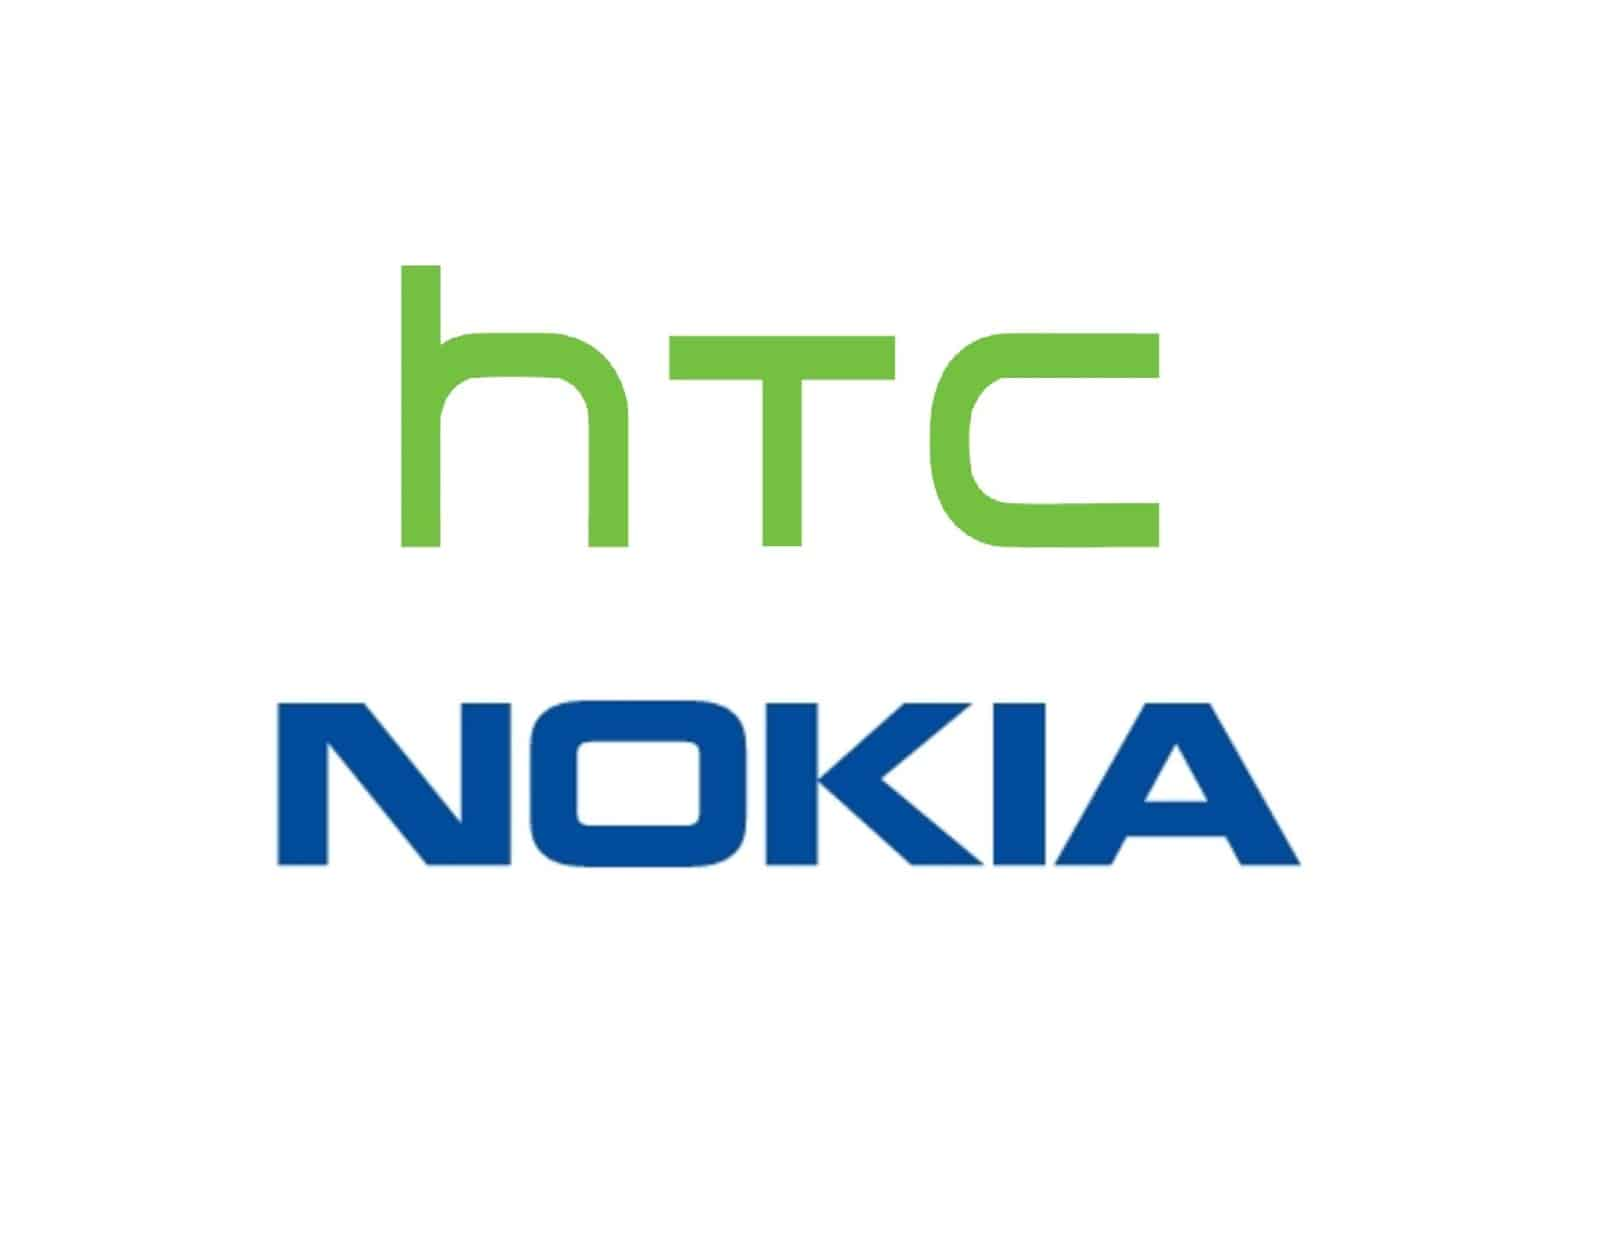 HTC needs Nokia